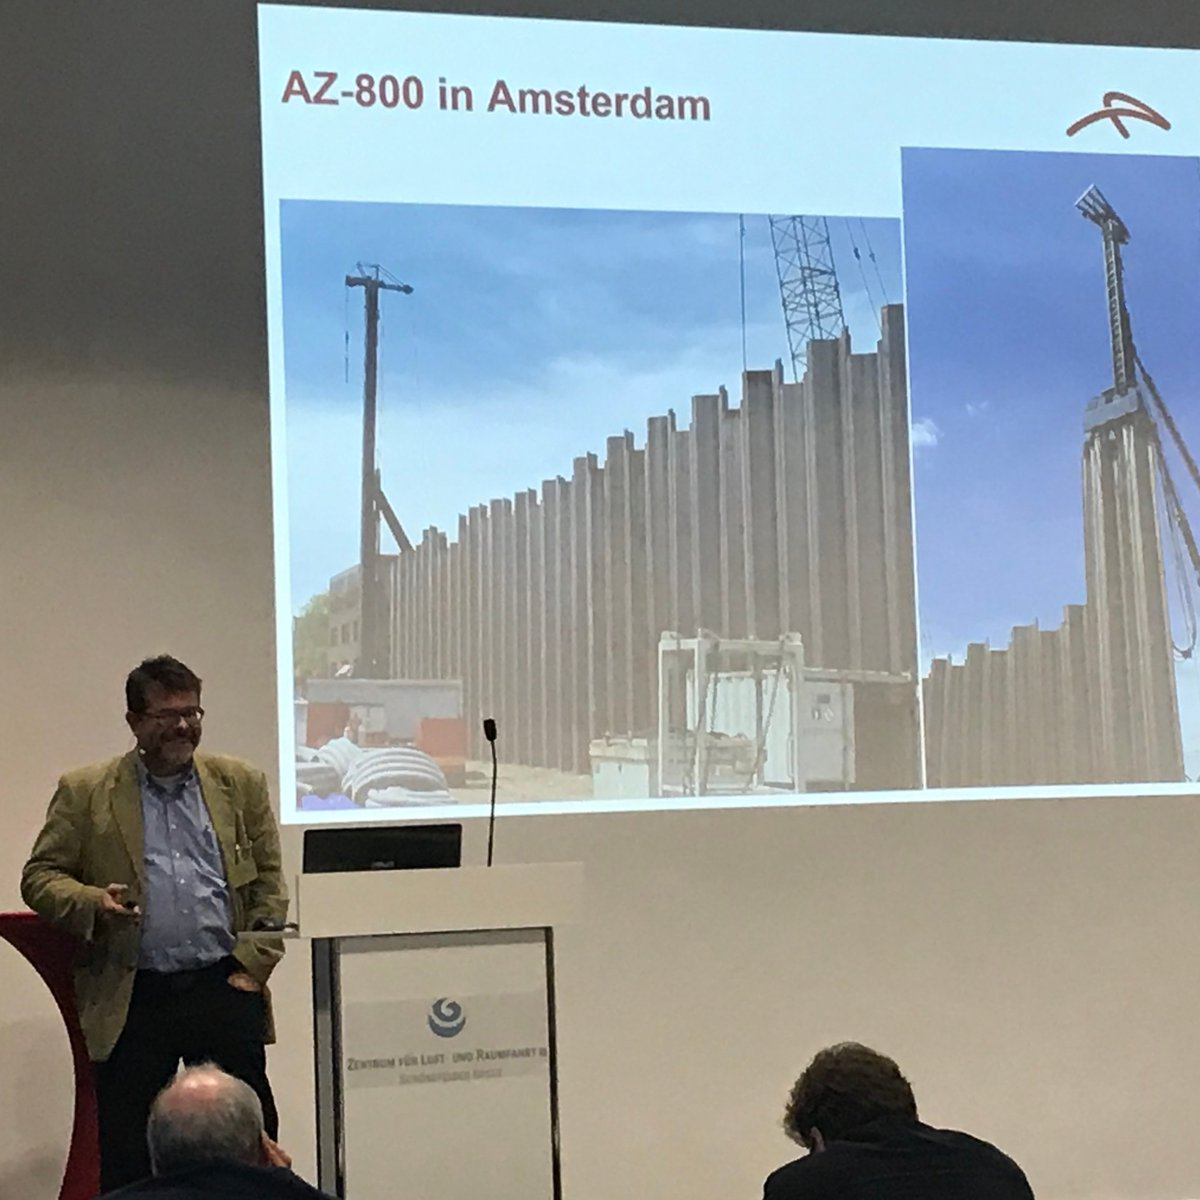 Our colleague Ernst Weber shared best practices on installation of steel sheet piles with low noise and vibration, including our new AZ® 800 range, at the IRO seminar in Wildau on 27.11.2019. To learn more: https://t.co/pcJm273mGW #sheetpiling #steelsheetpiles #installation https://t.co/A5OpK3pUsL